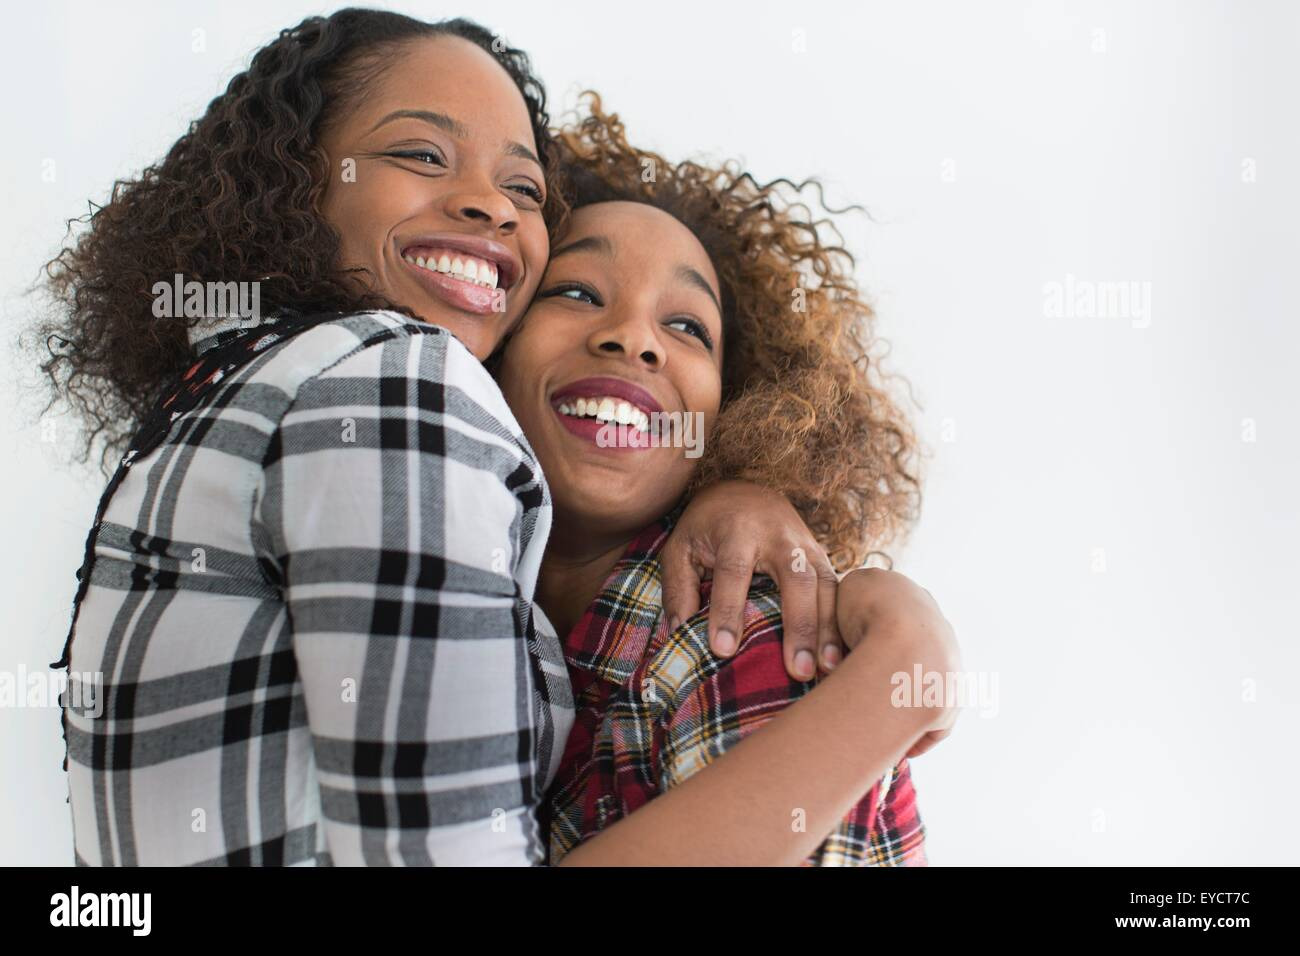 Studio portrait of two young women friends hugging - Stock Image